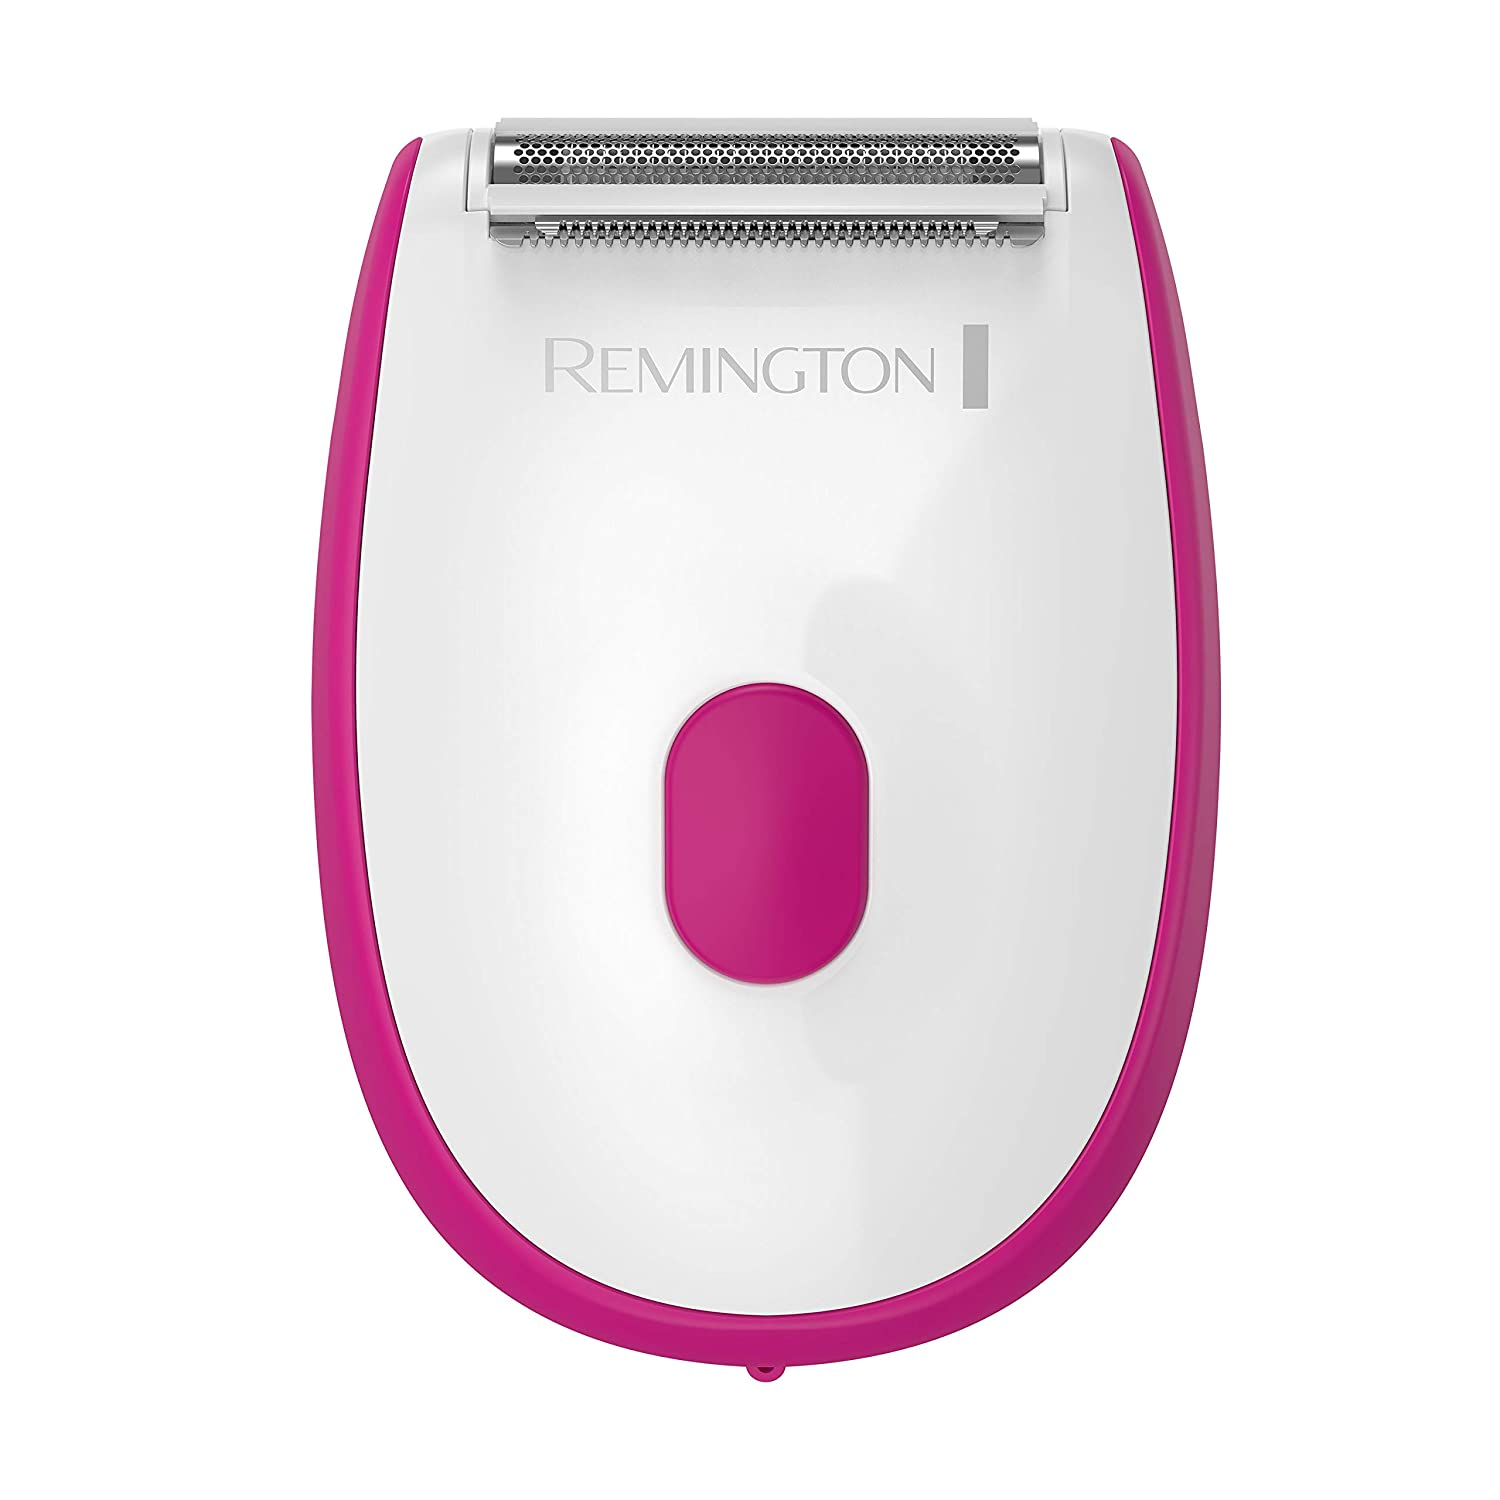 Smooth & Silky Shaver for Women, Wet/Dry Razor with Hypoallergenic Foil - White/Red